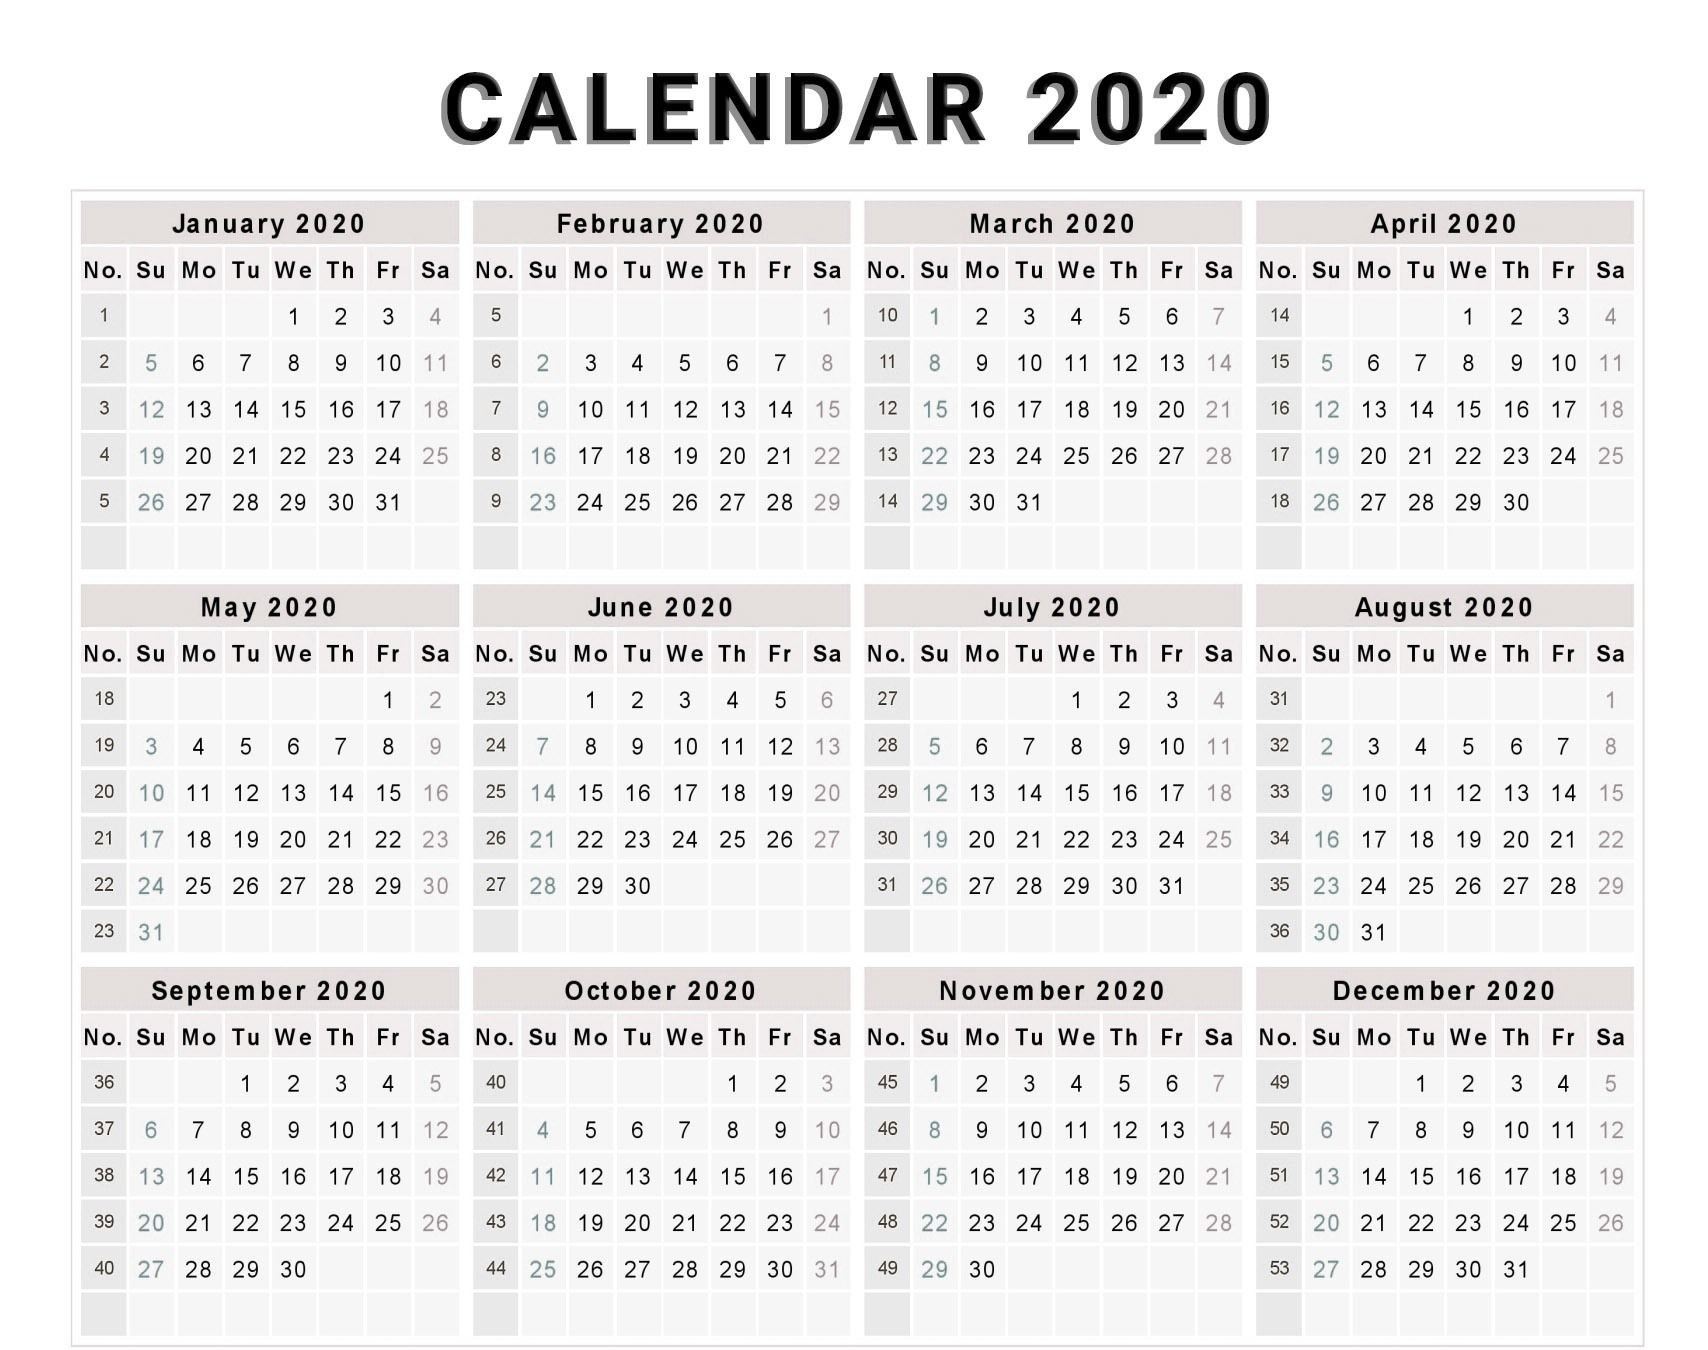 Calendar 2020 Free Template With Weeks | Monthly Calendar-2020 Monthly Calendars To Print With Jewish Holidays